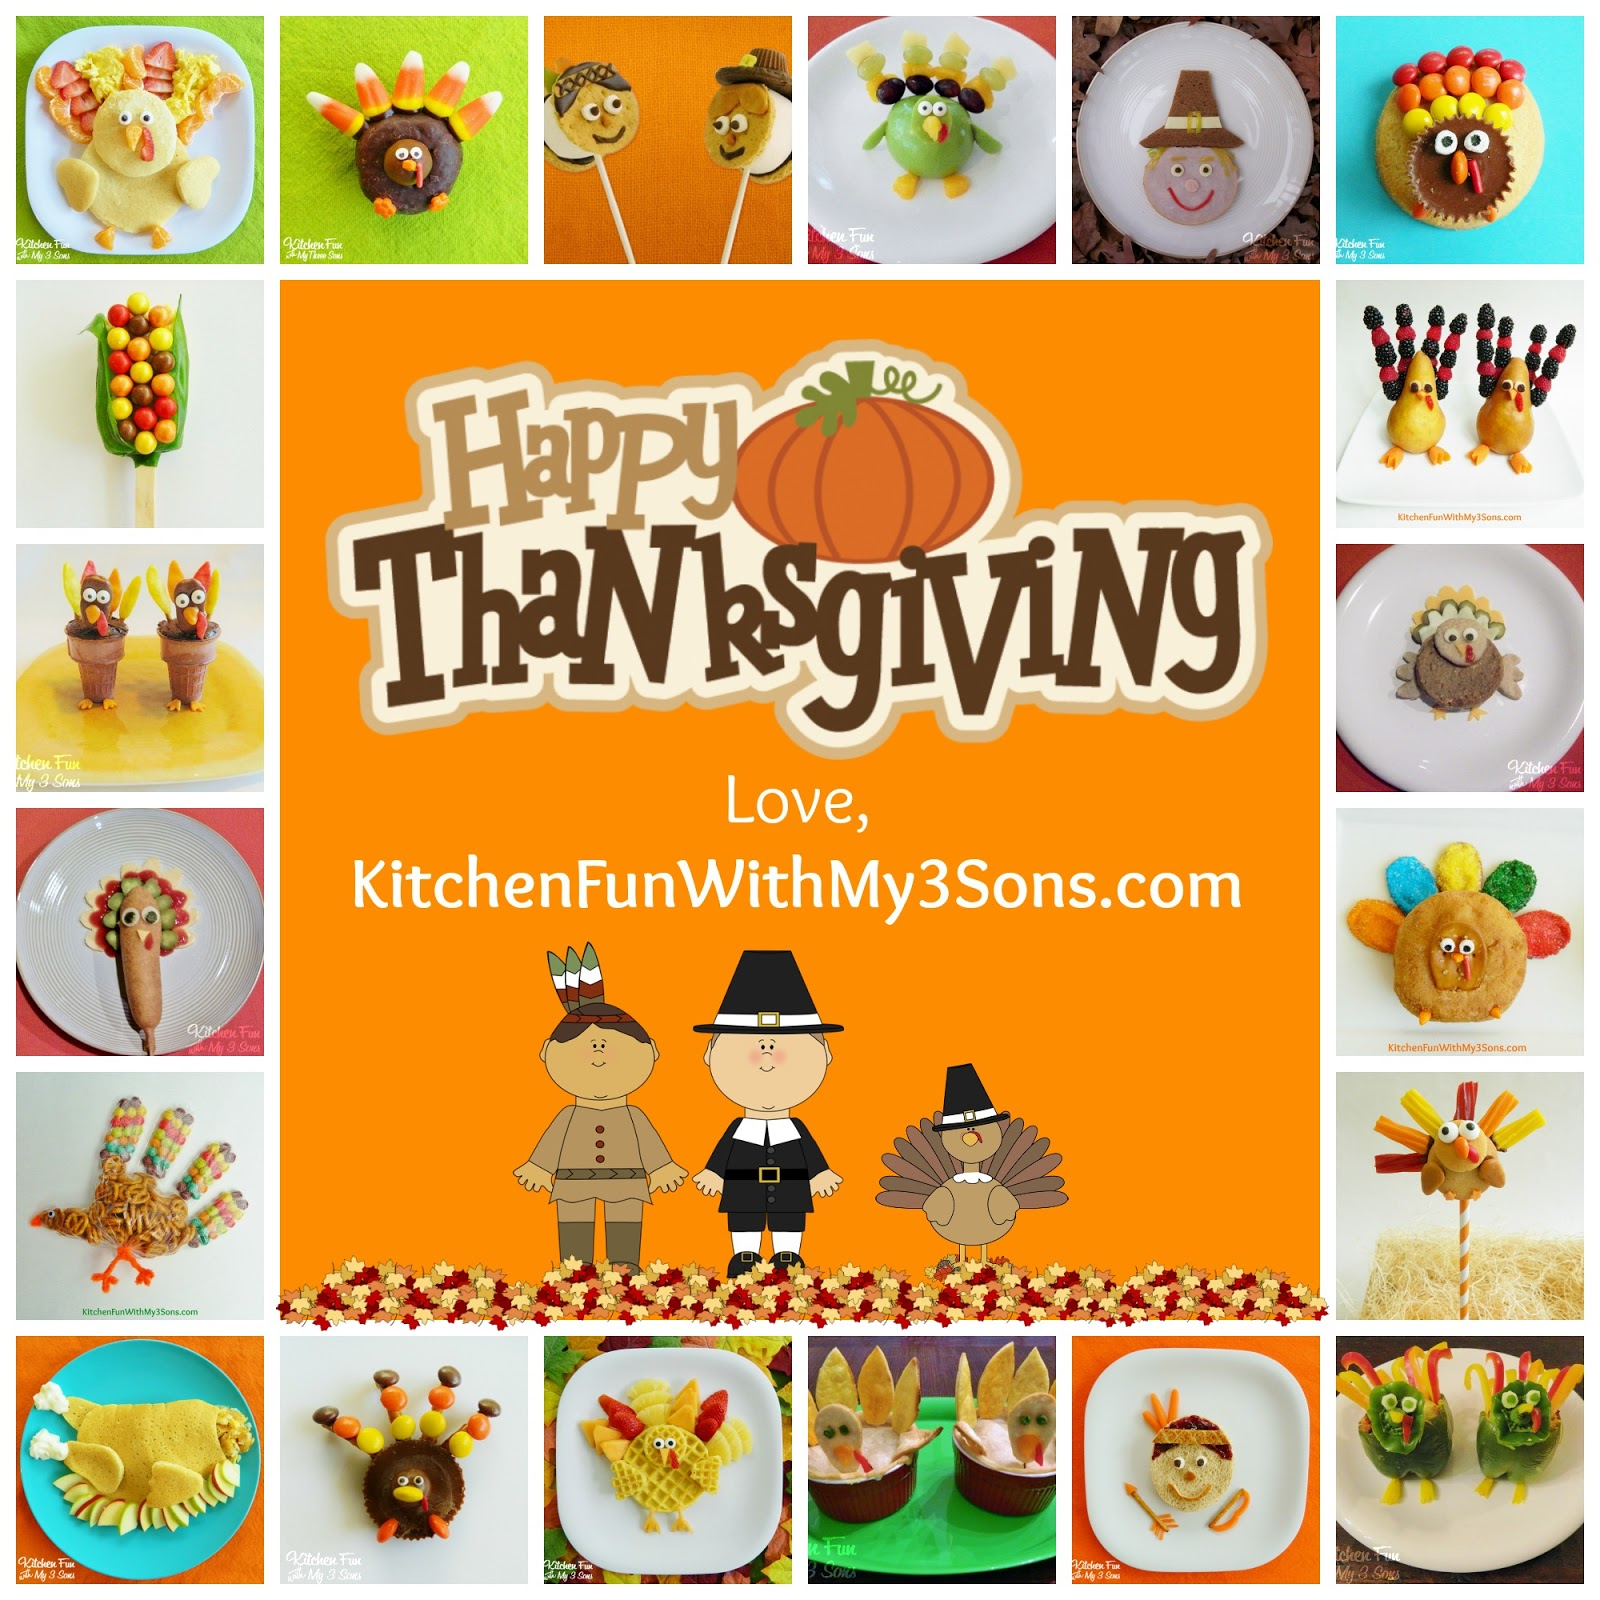 Fun Food Ideas for Kids for Thanksgiving